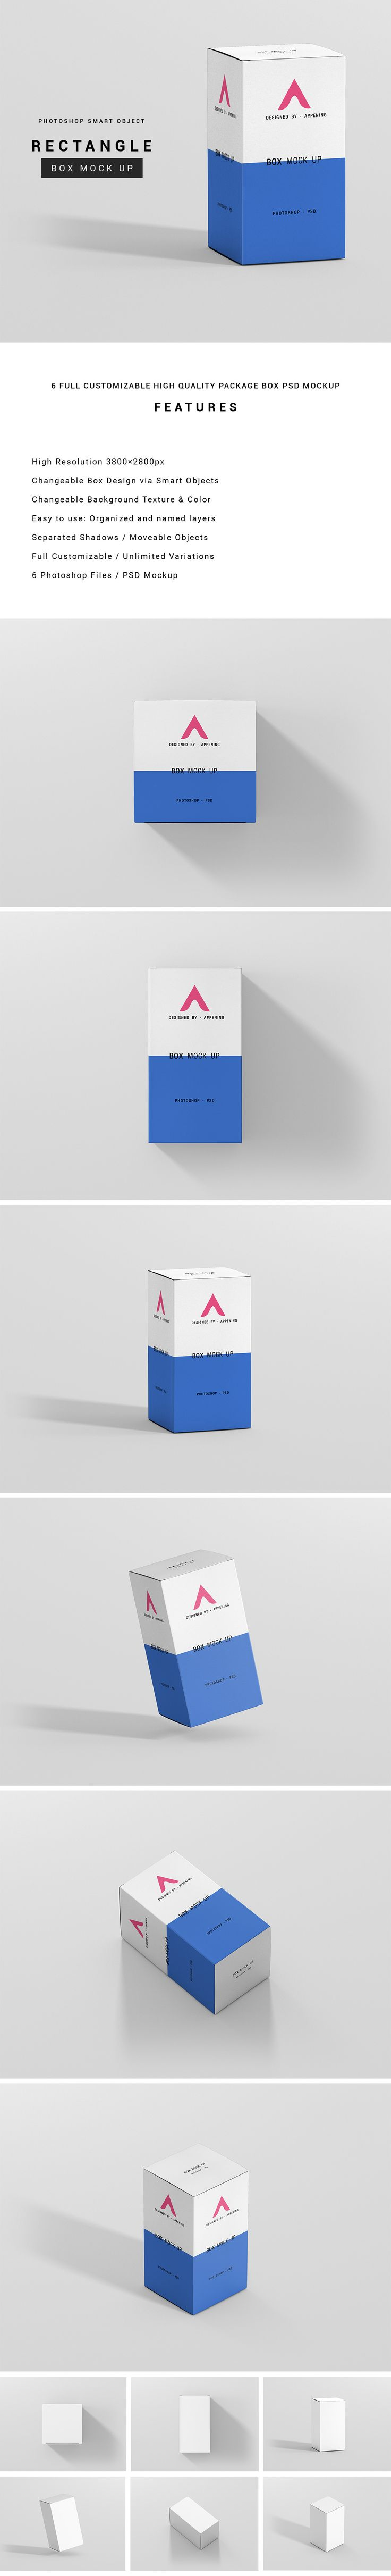 14 Best Mockups Images On Pinterest Miniatures Mockup And Model File Type Photoshop Psd Image Size 3400 X 2800 Resolution Here Comes A Pack Of Free Rectangle Box This Set Contains 6 Different Perspective Photo Realistic